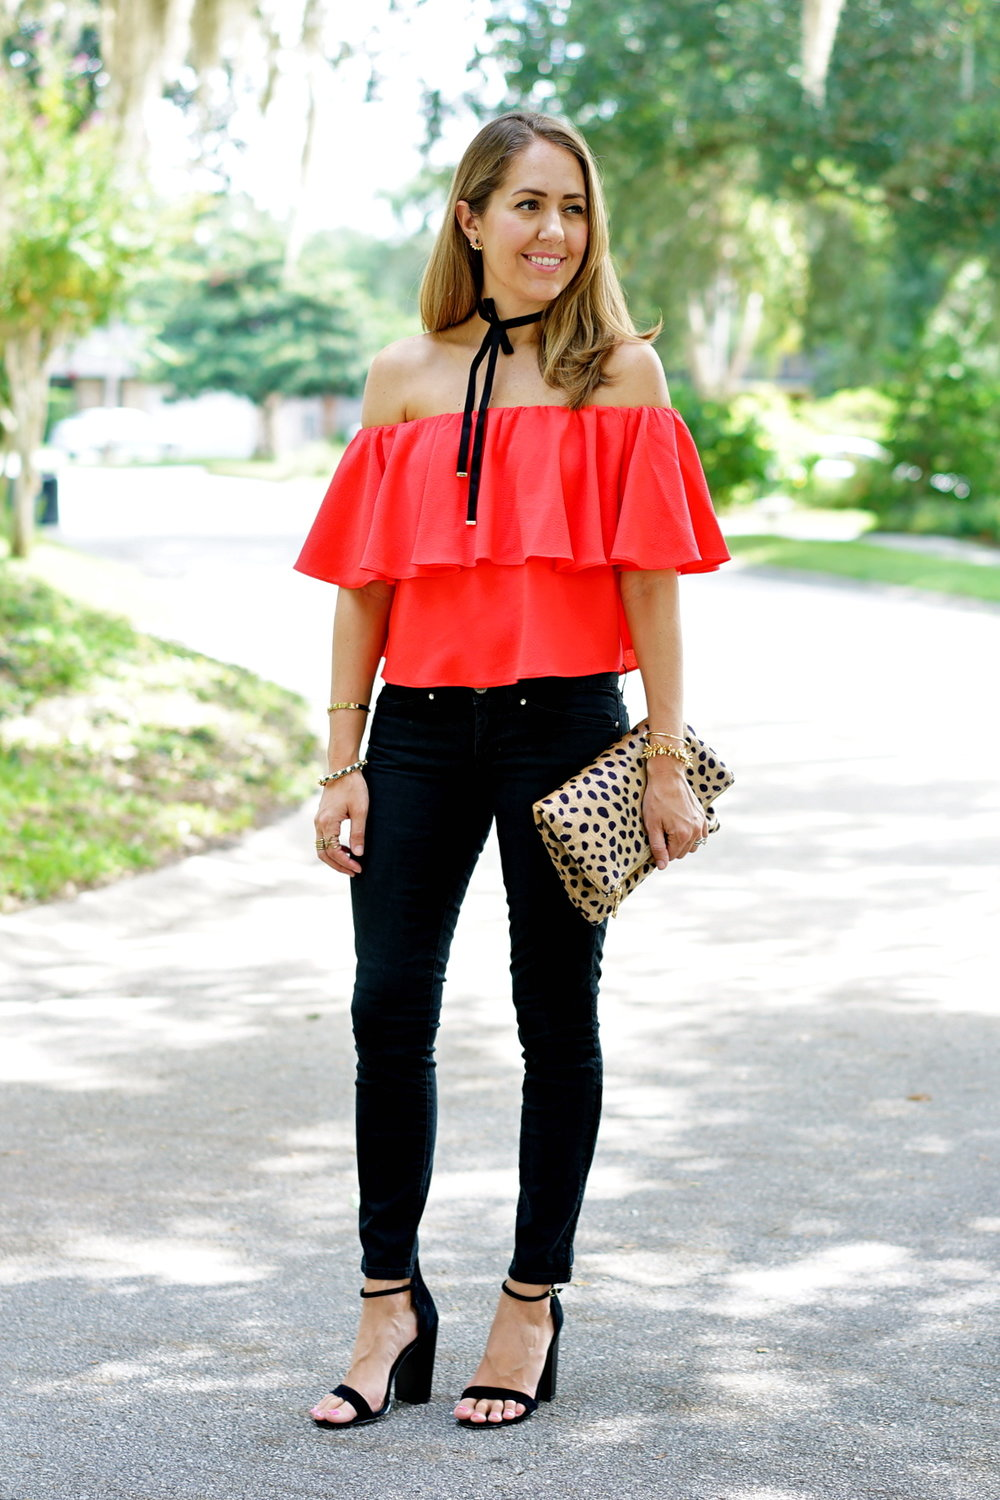 Red top, black jeans, leopard clutch